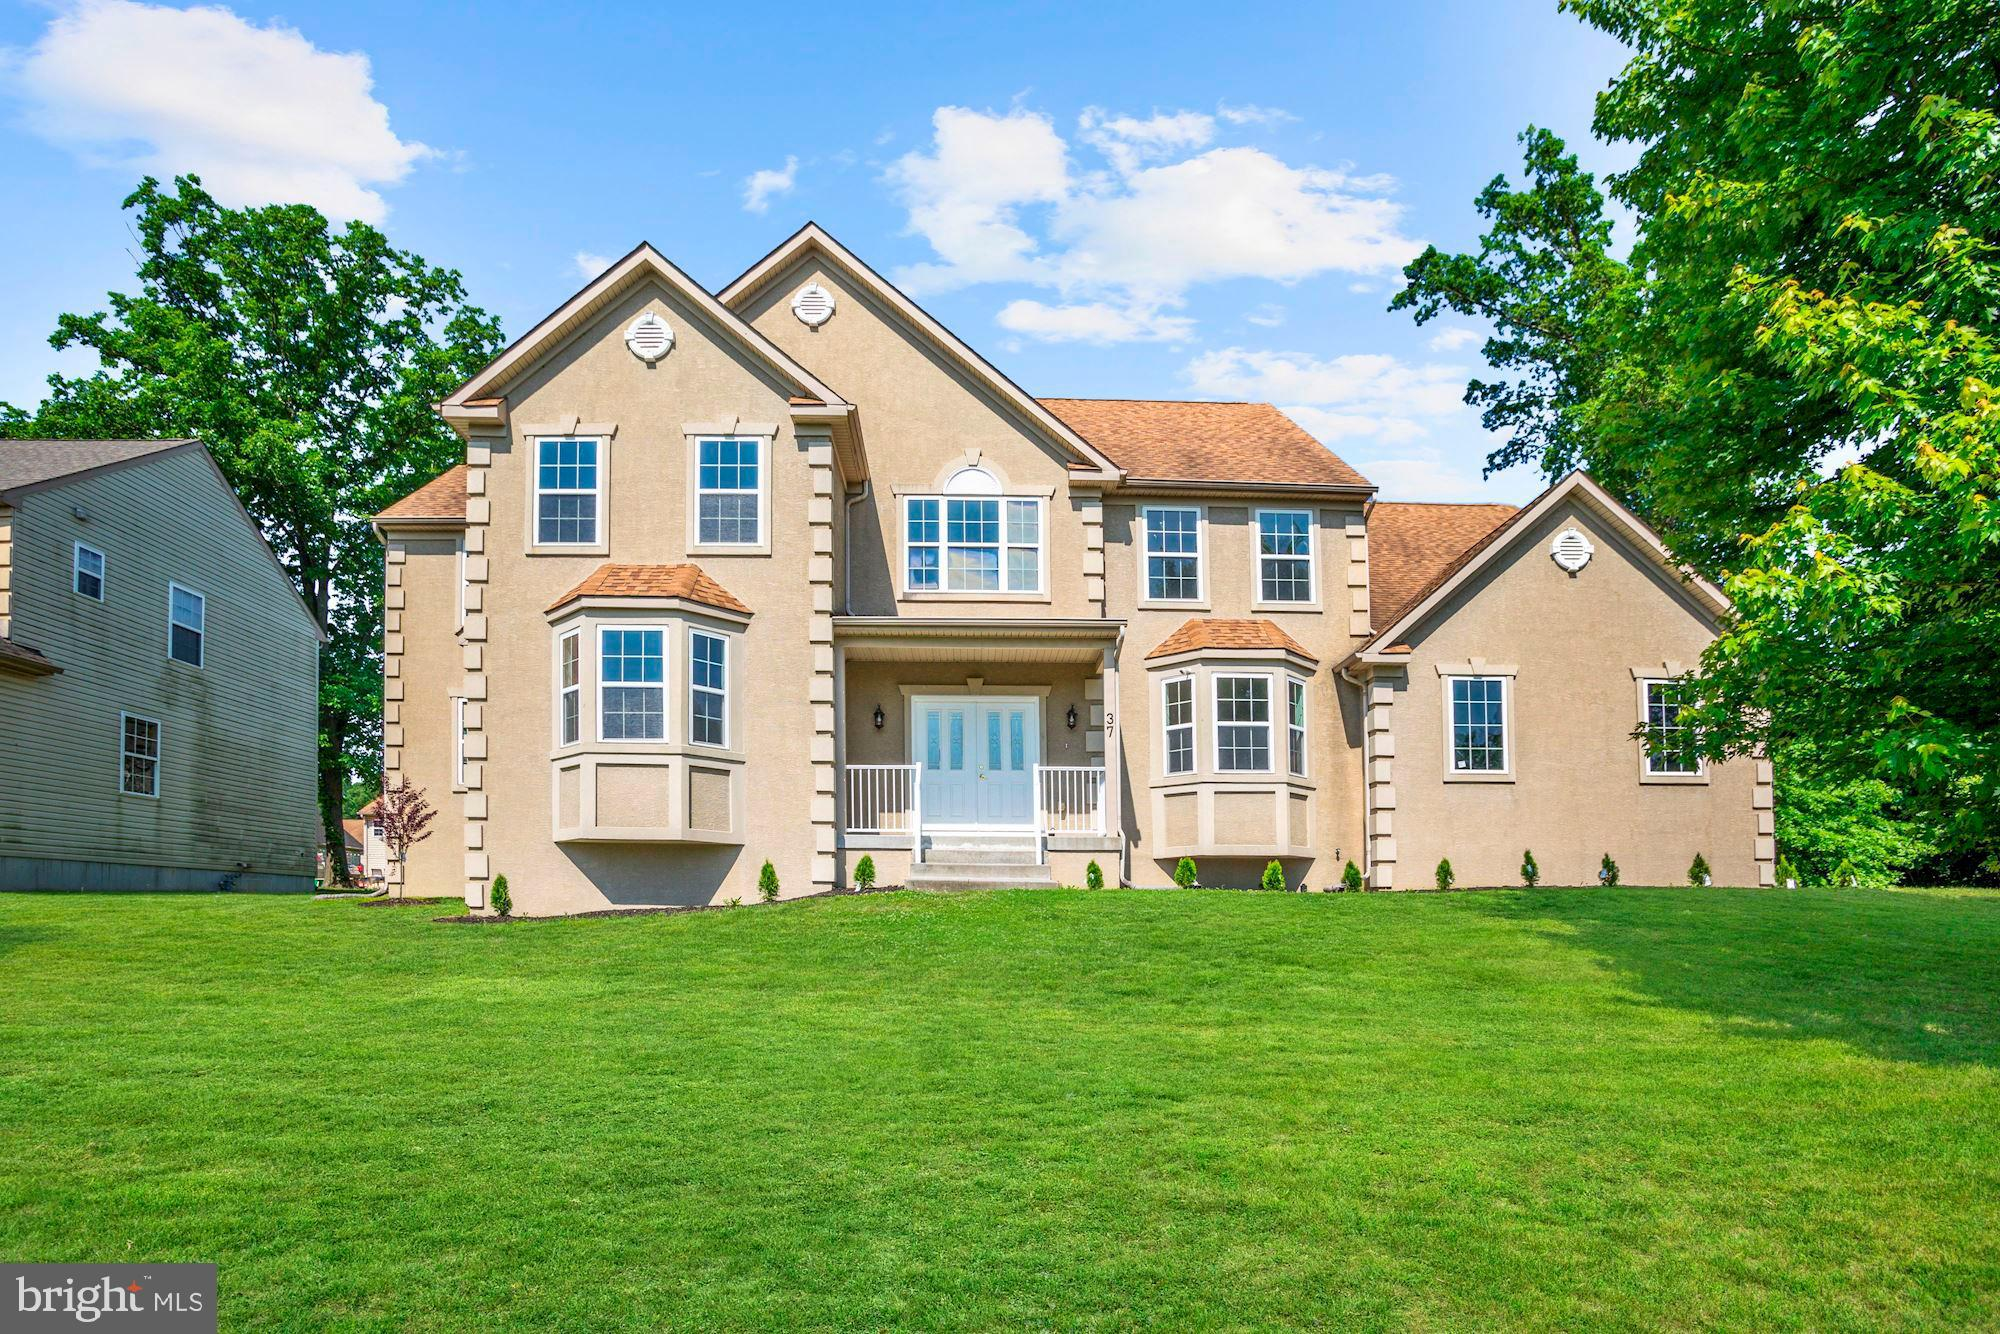 37 RIVER RUN, LAWNSIDE, NJ 08045